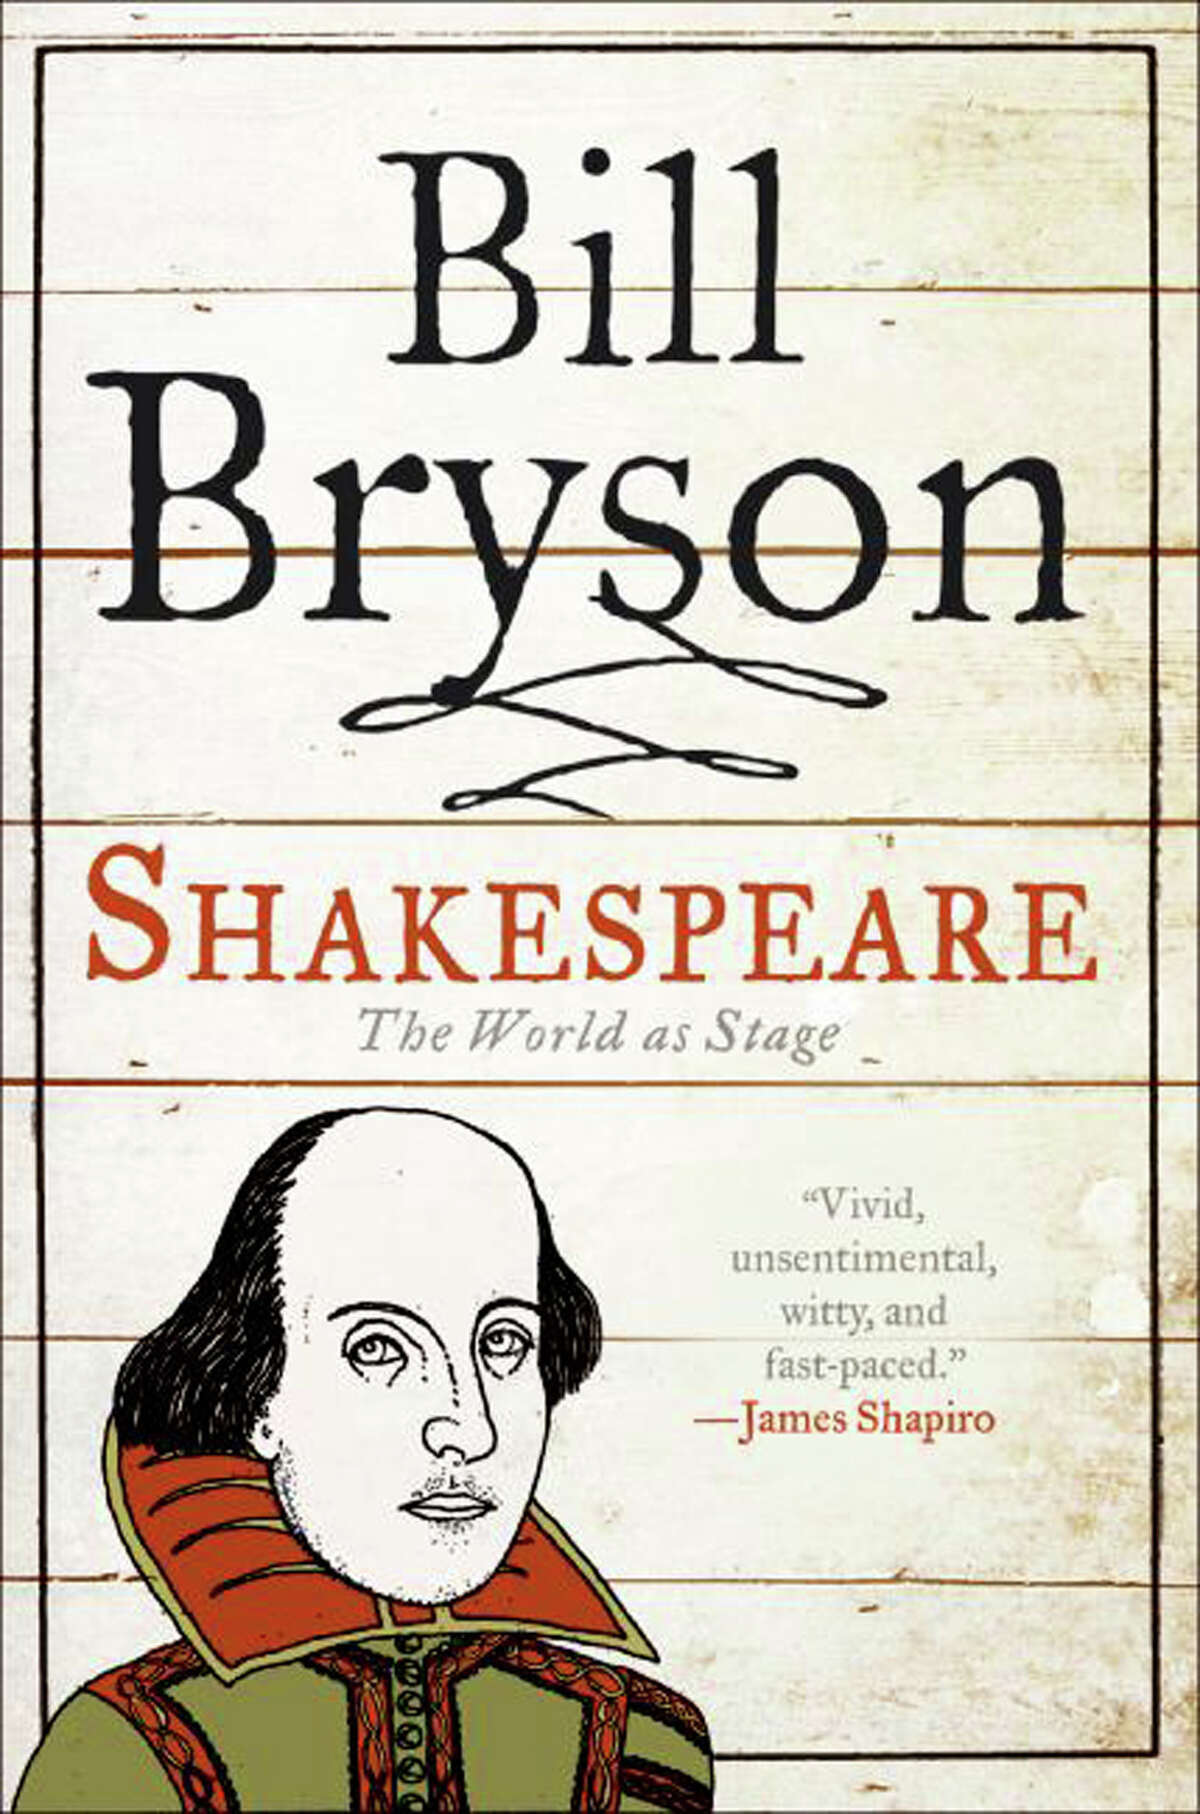 """Looking for a biography of William Shakespeare? Try Bill Bryson's """"Shakespeare: The World as Stage,"""" says Greenwich Library's Cathleen Blood. """"I adore Brysonís accessible style and storytelling ability,"""" Blood says."""